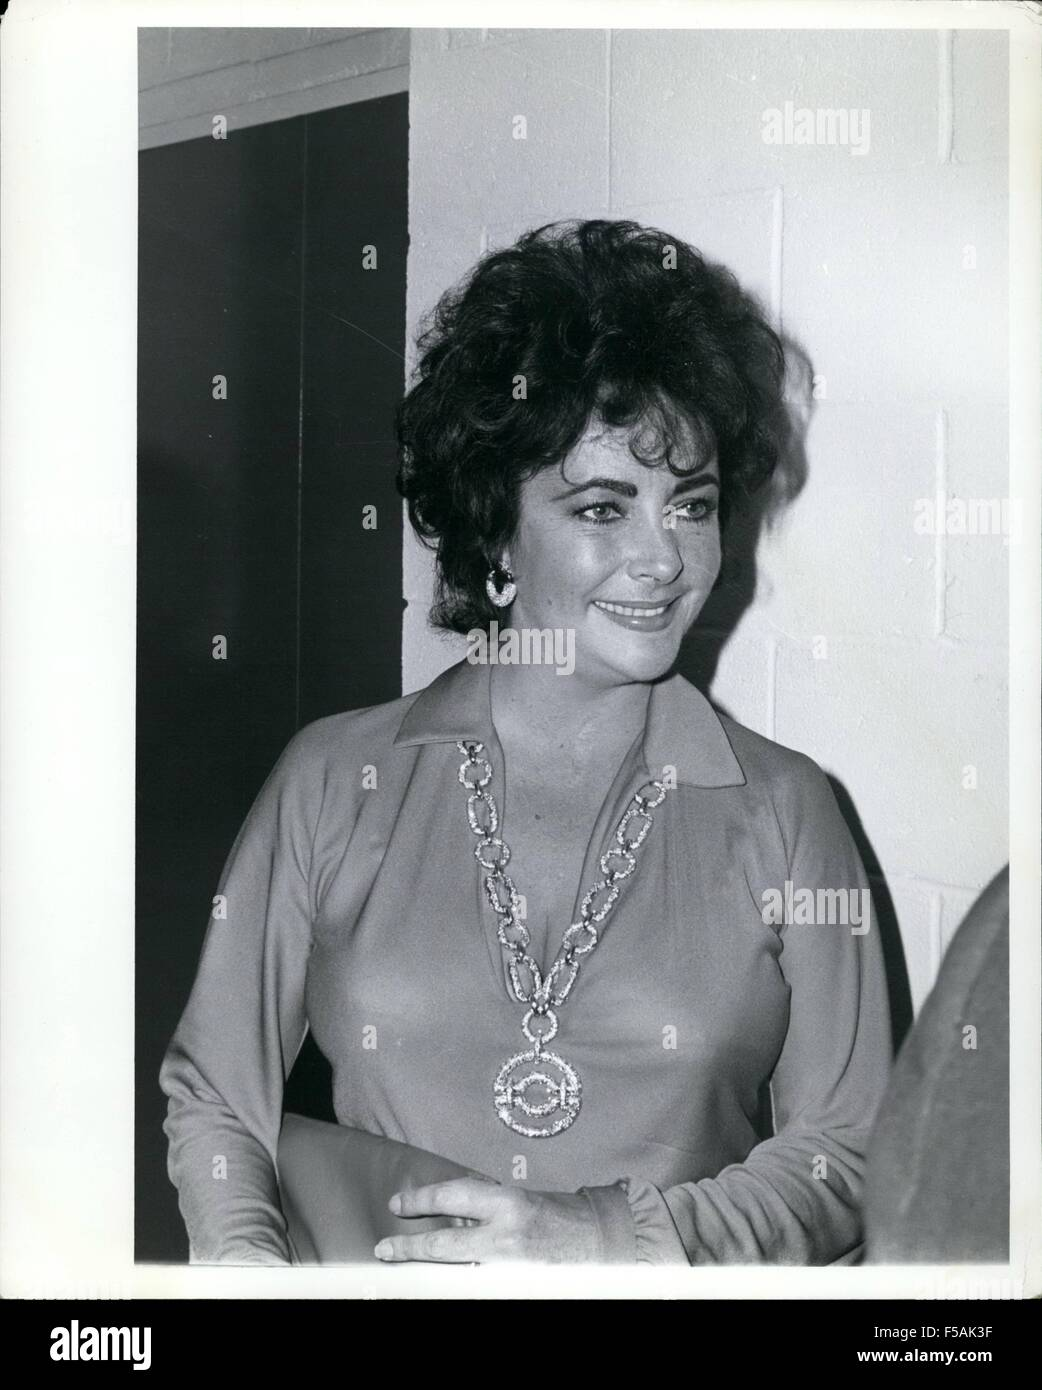 Page 3 Elizabeth Liz Taylor High Resolution Stock Photography And Images Alamy